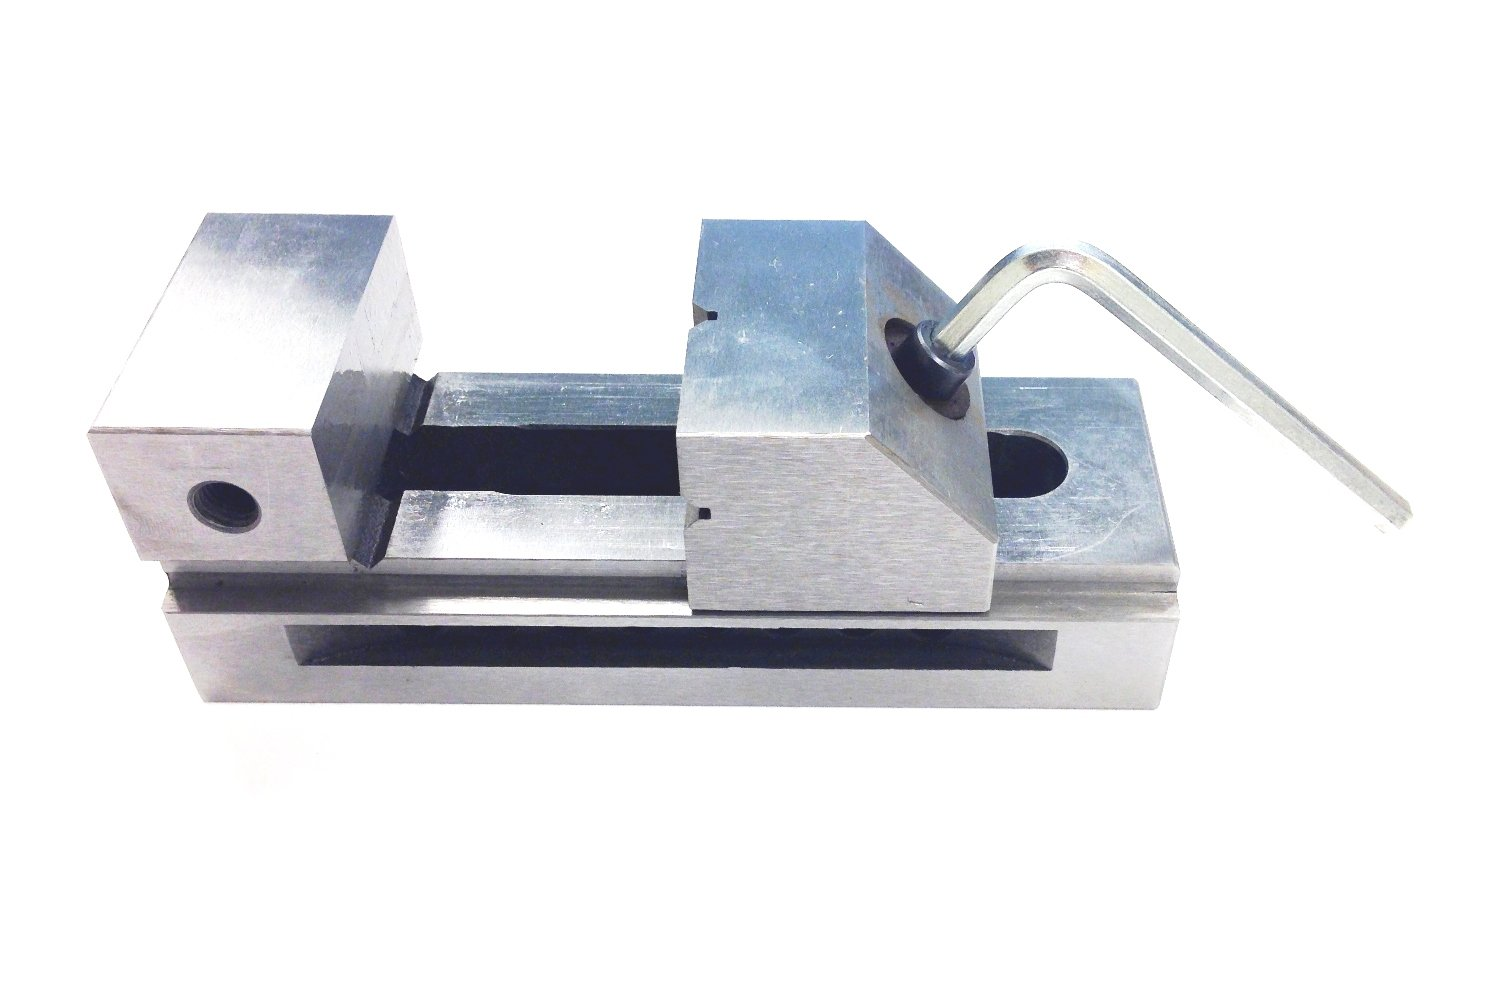 HHIP 3900-0022 2 Inch Precision Parallel Screwless Vise